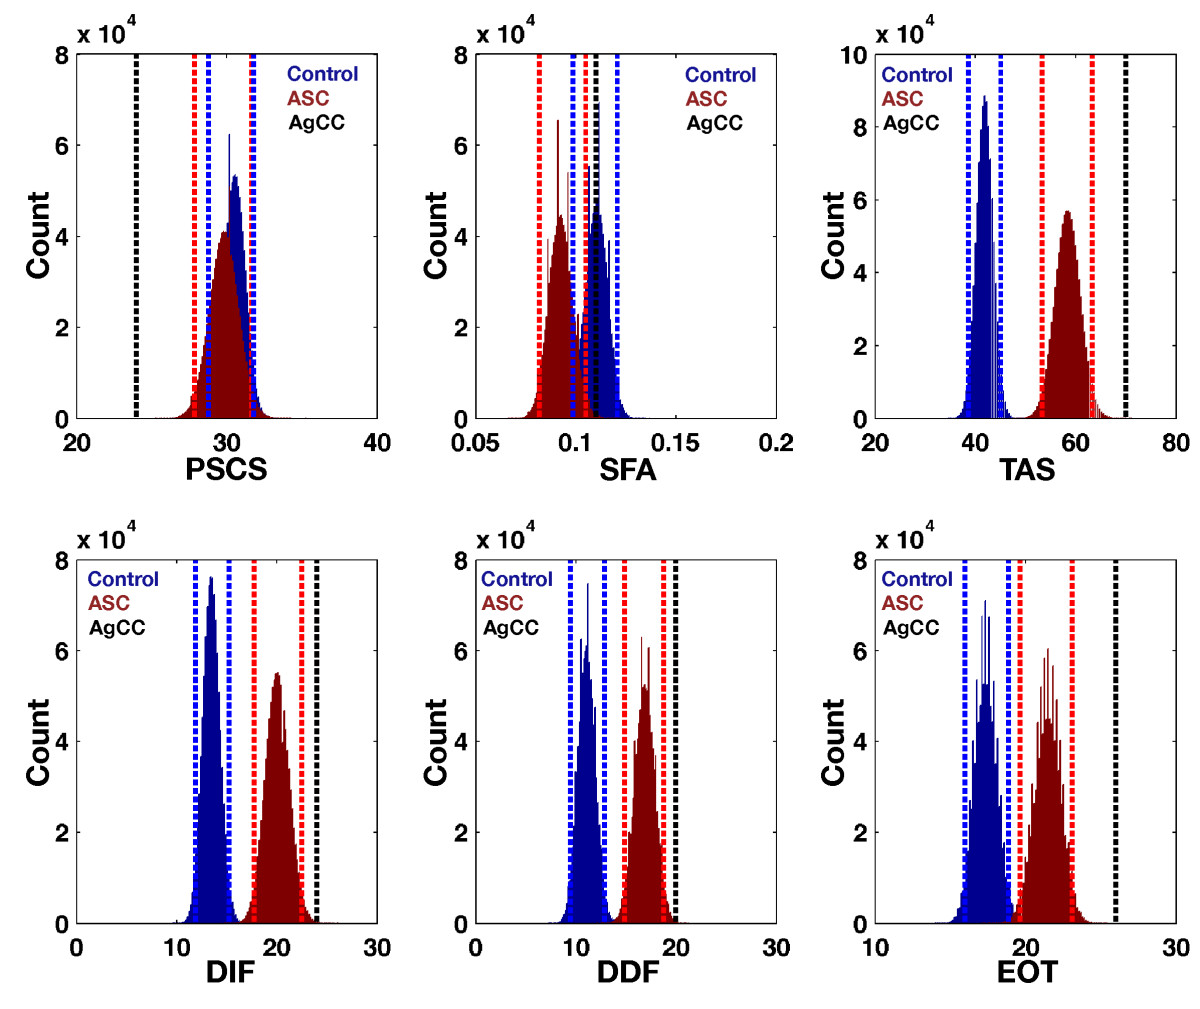 http://static-content.springer.com/image/art%3A10.1186%2F2040-2392-3-14/MediaObjects/13229_2012_Article_44_Fig4_HTML.jpg